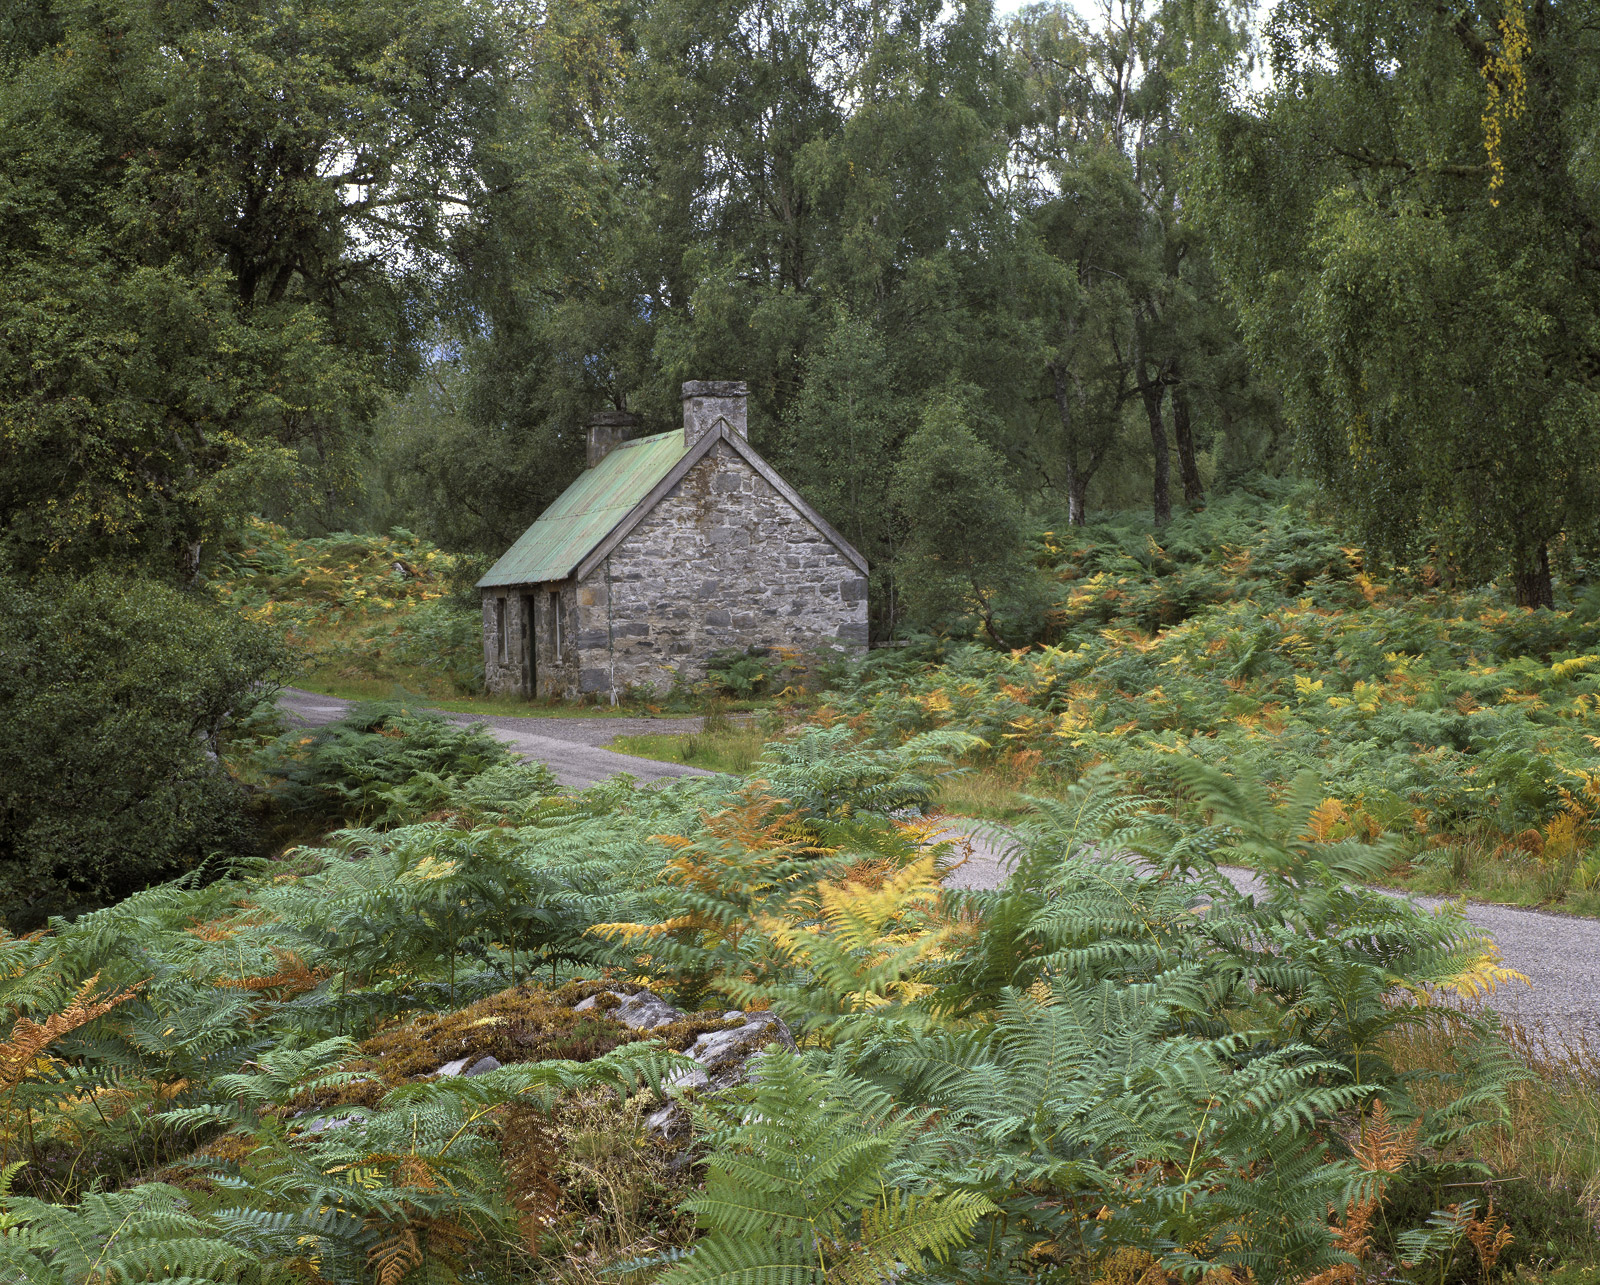 This picturesque little stone bothy is a few miles into the Strathfarrar glen and makes a splendid photograph when the foliage...